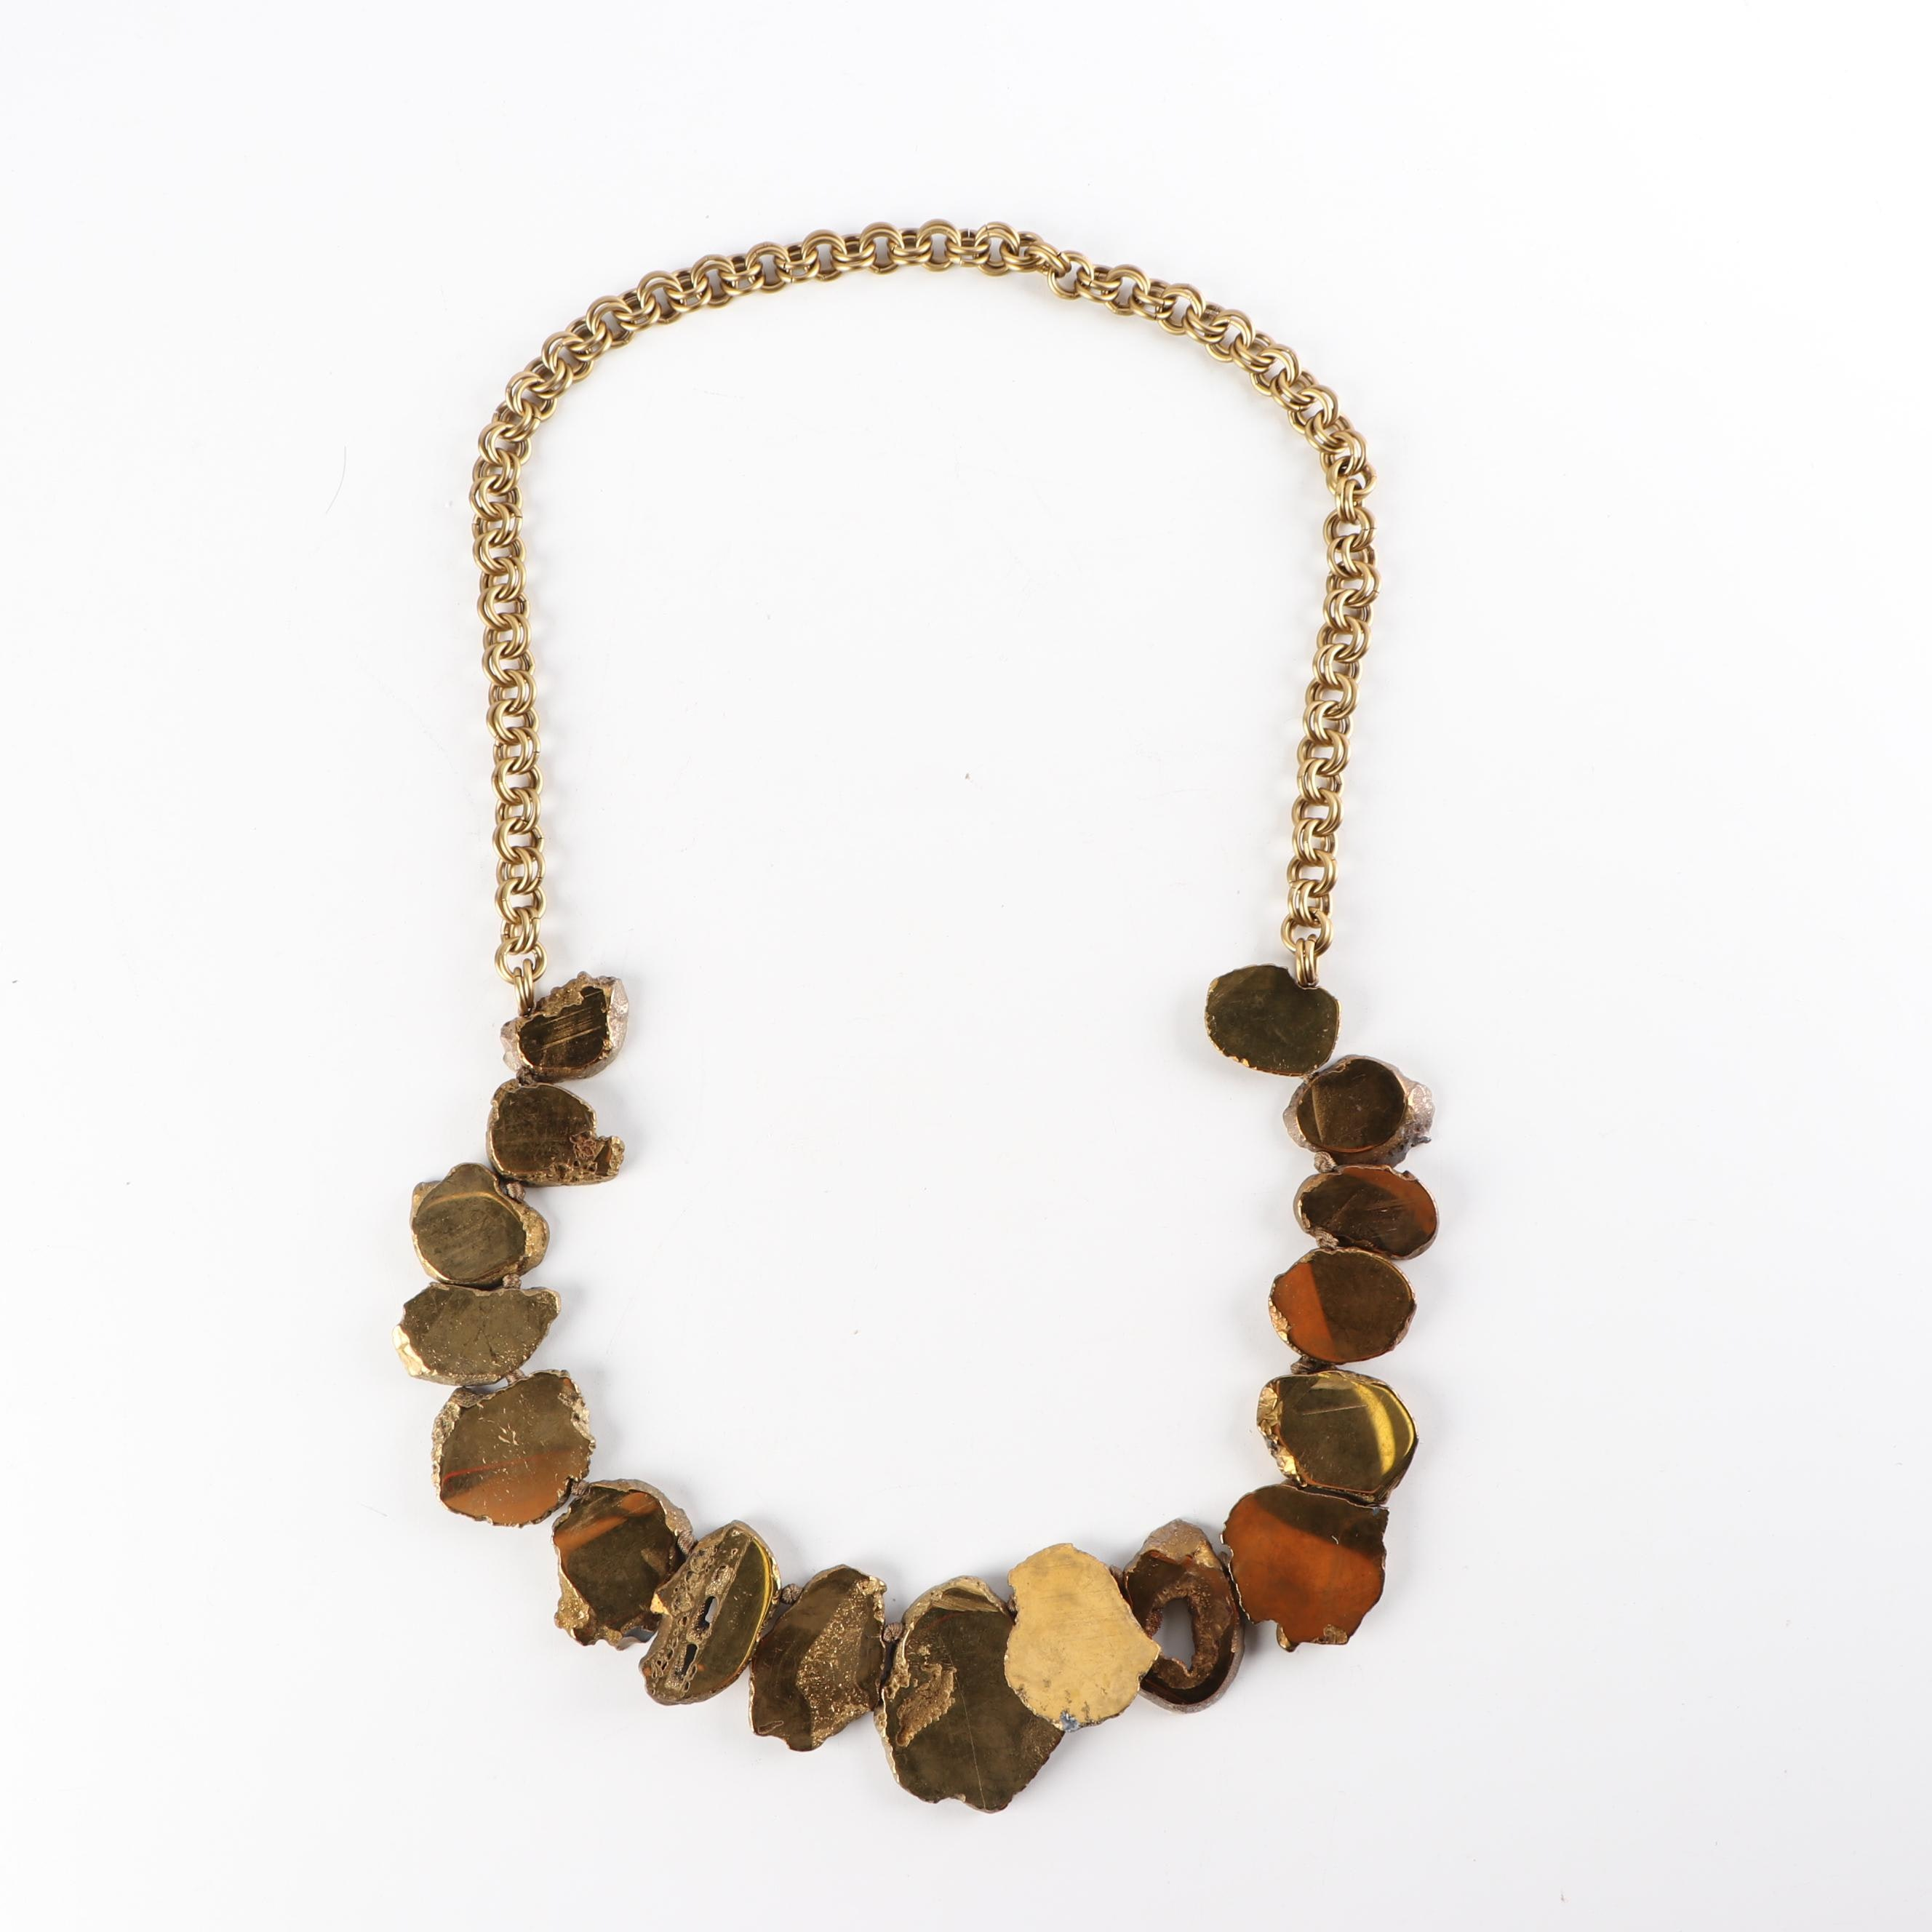 Gold Tone and Metallic Sliced Geode Necklace